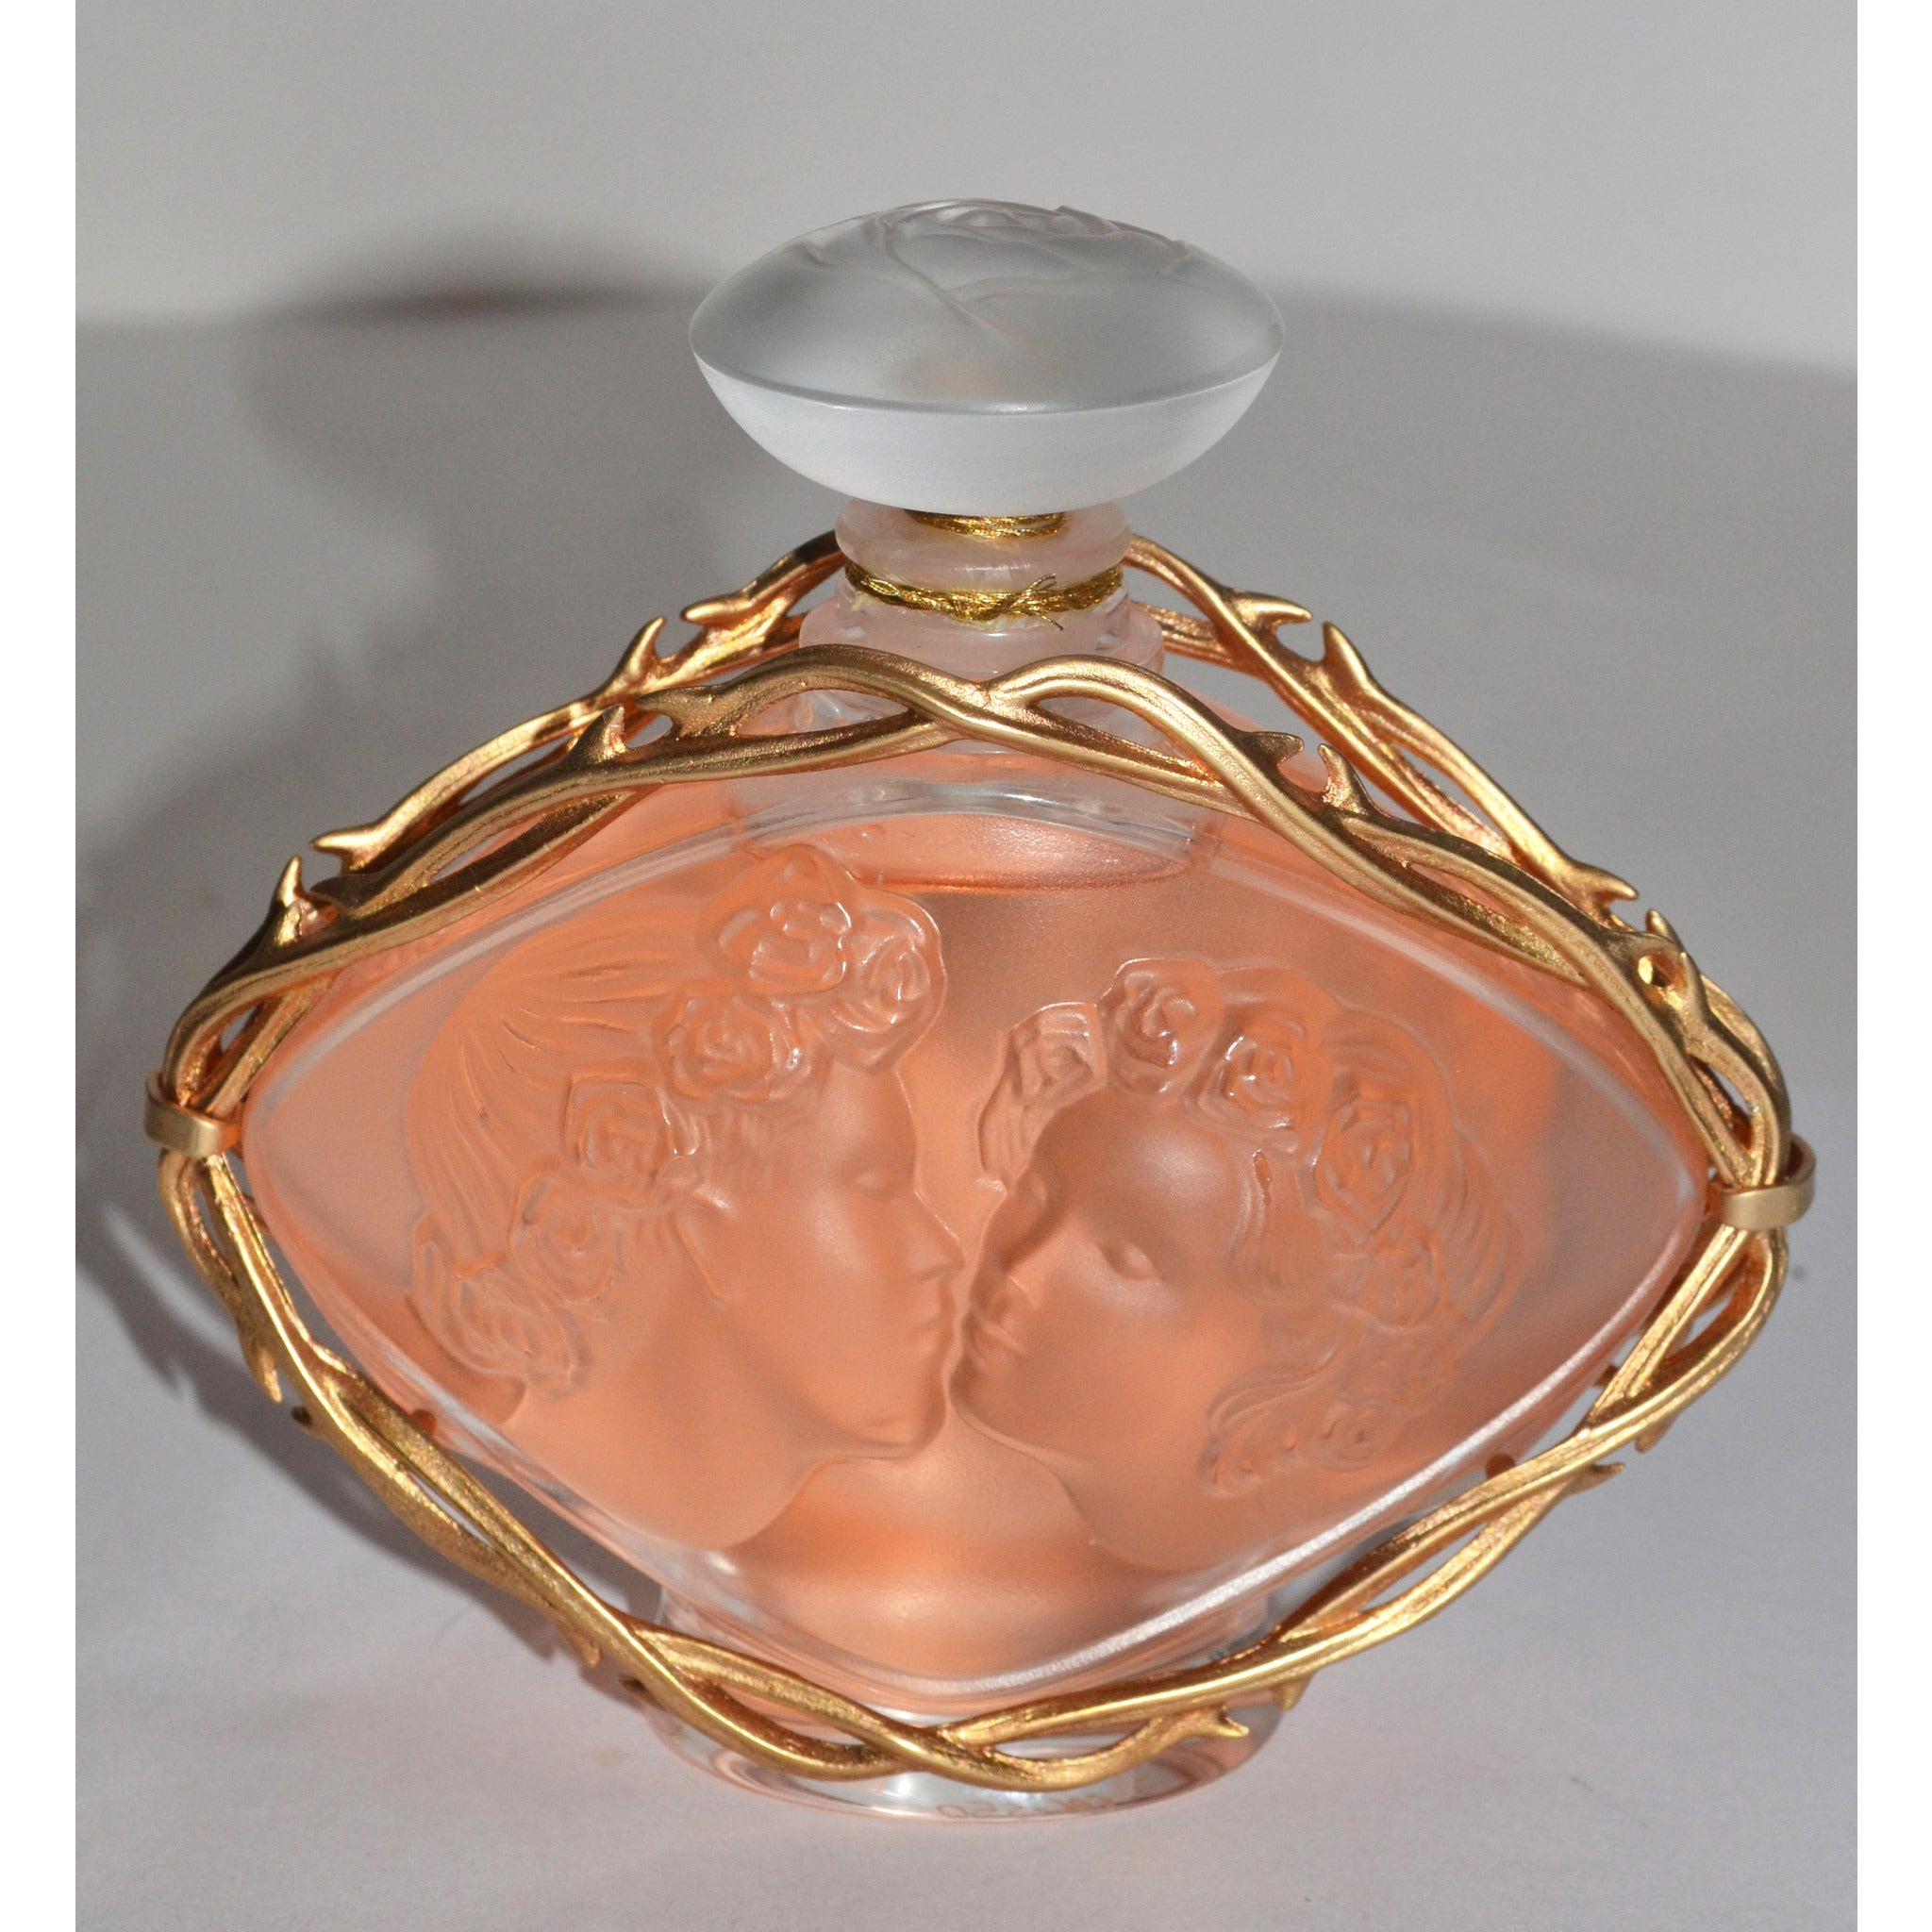 Le Baiser Perfume By Lalique 1999 Limited Flacon Collection